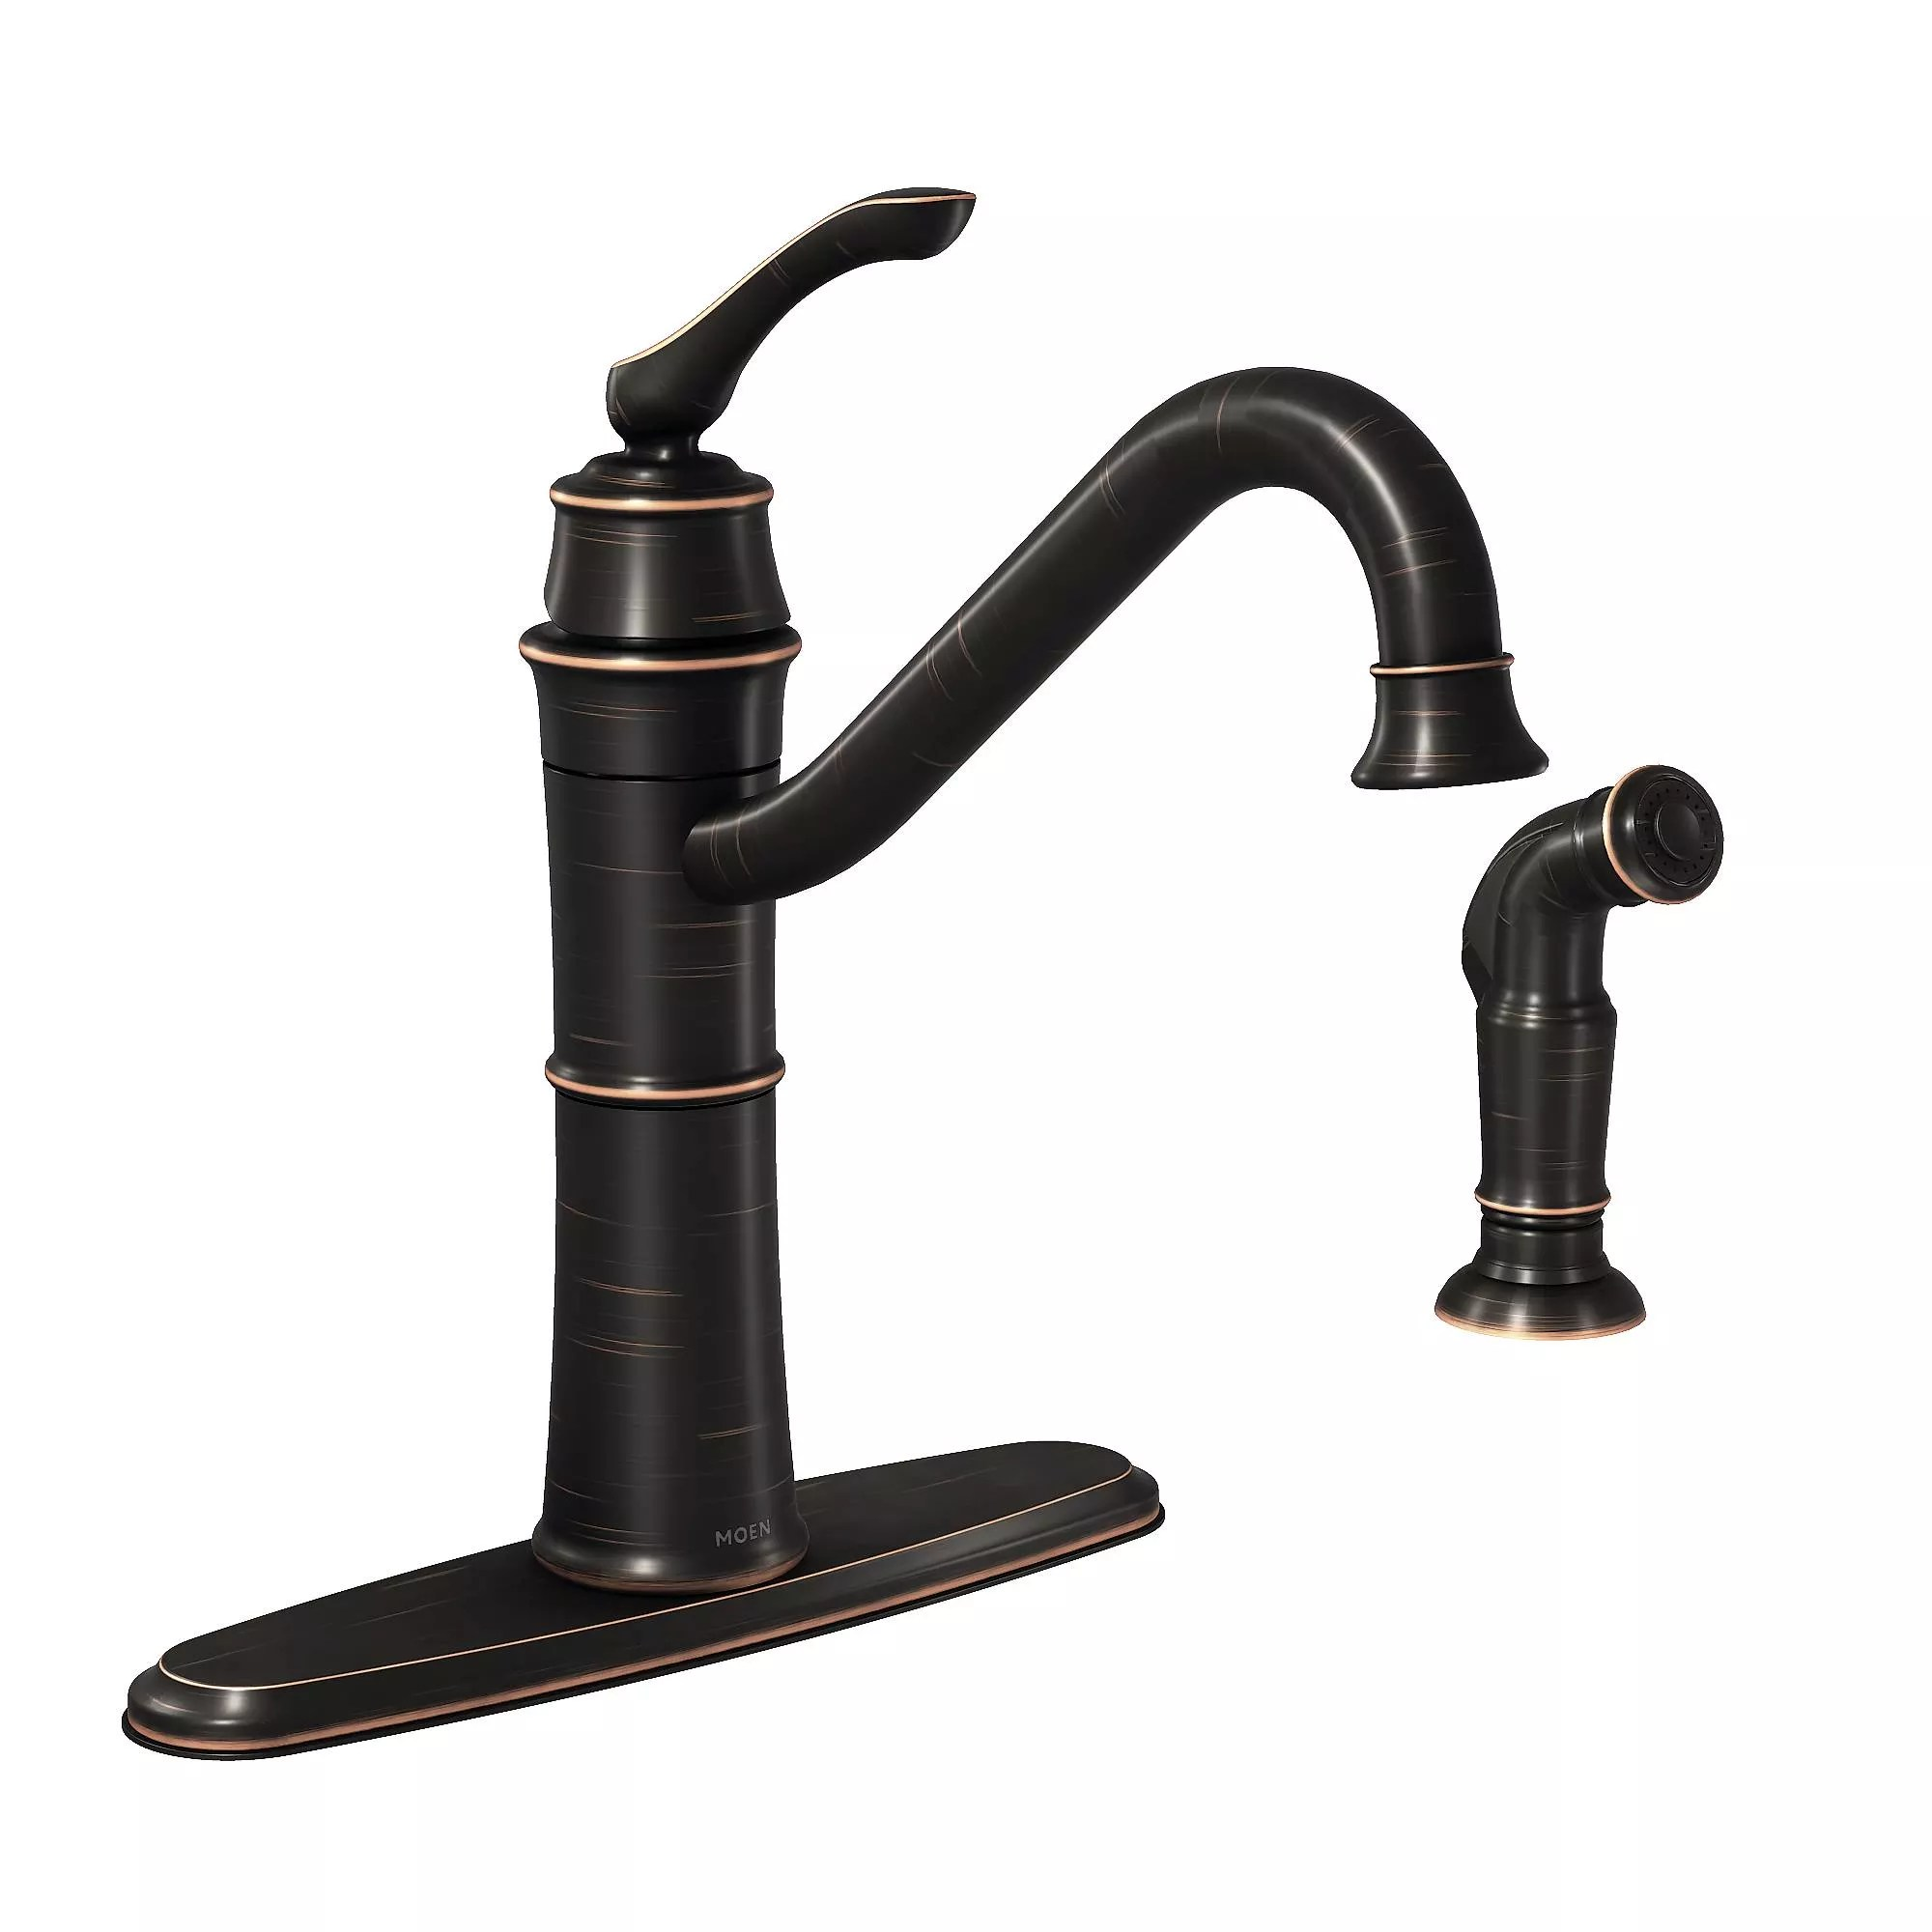 moen kitchen sink faucets suite deals 87999brb mediterranean bronze high arc faucet with side spray from the wetherly collection com